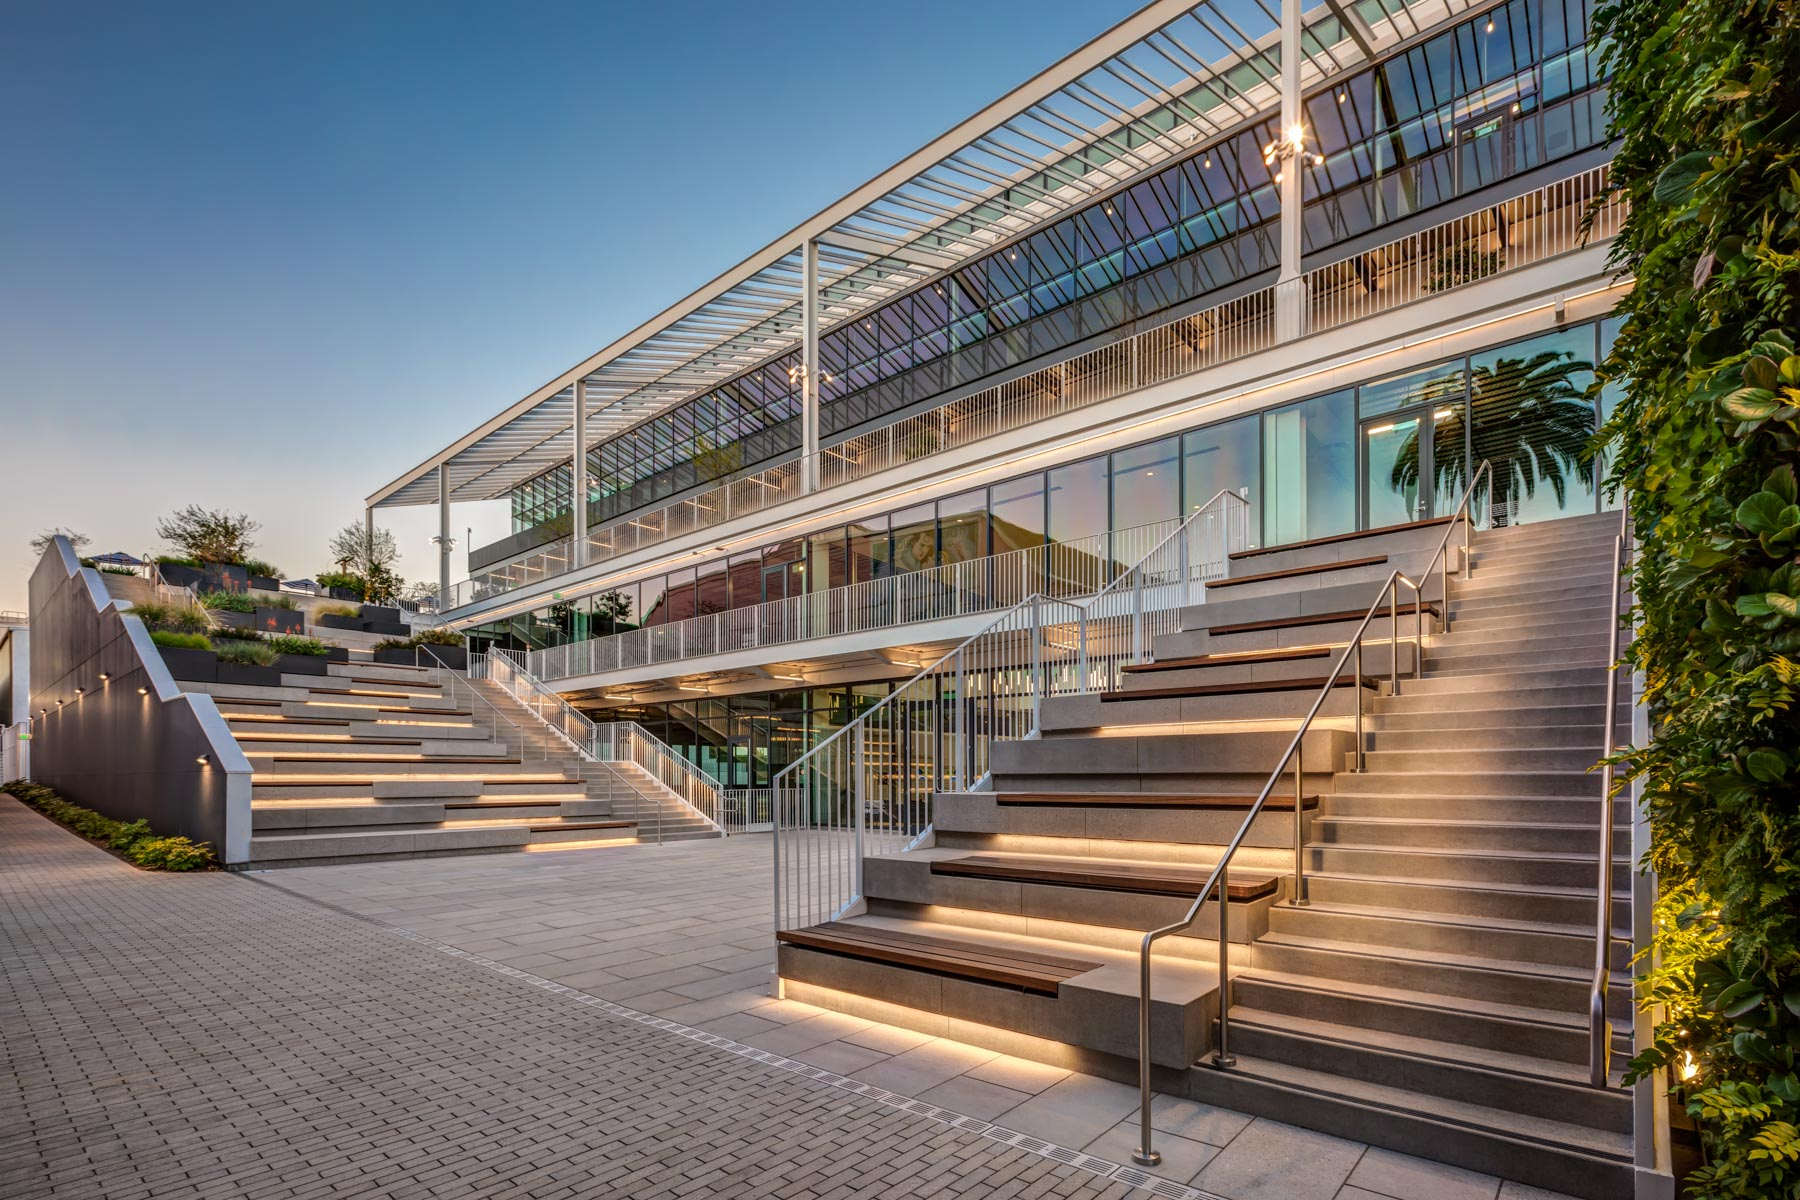 exterior stairs to Harlow at Sunset Las Palmas creative office